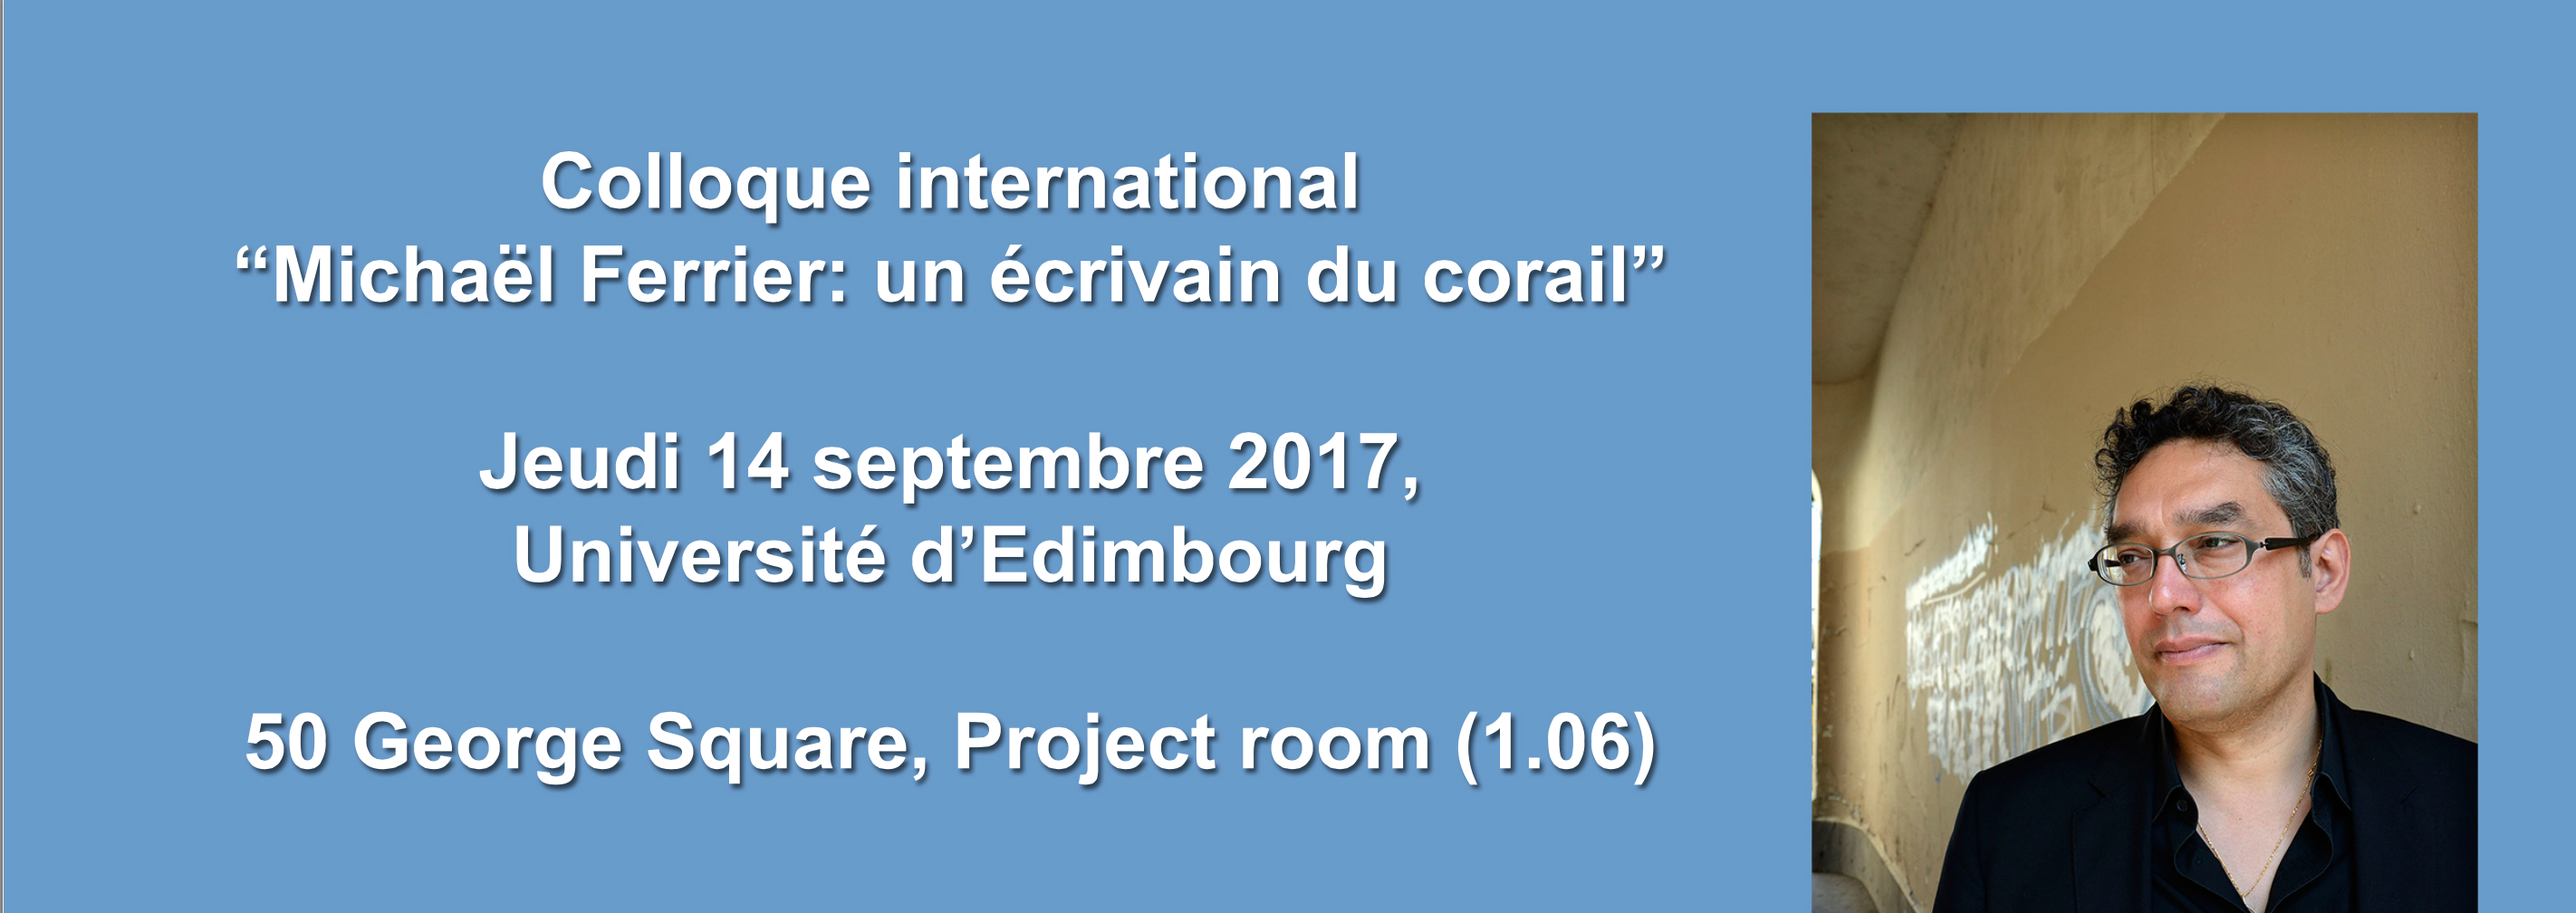 Colloque international Ferrier 2/3